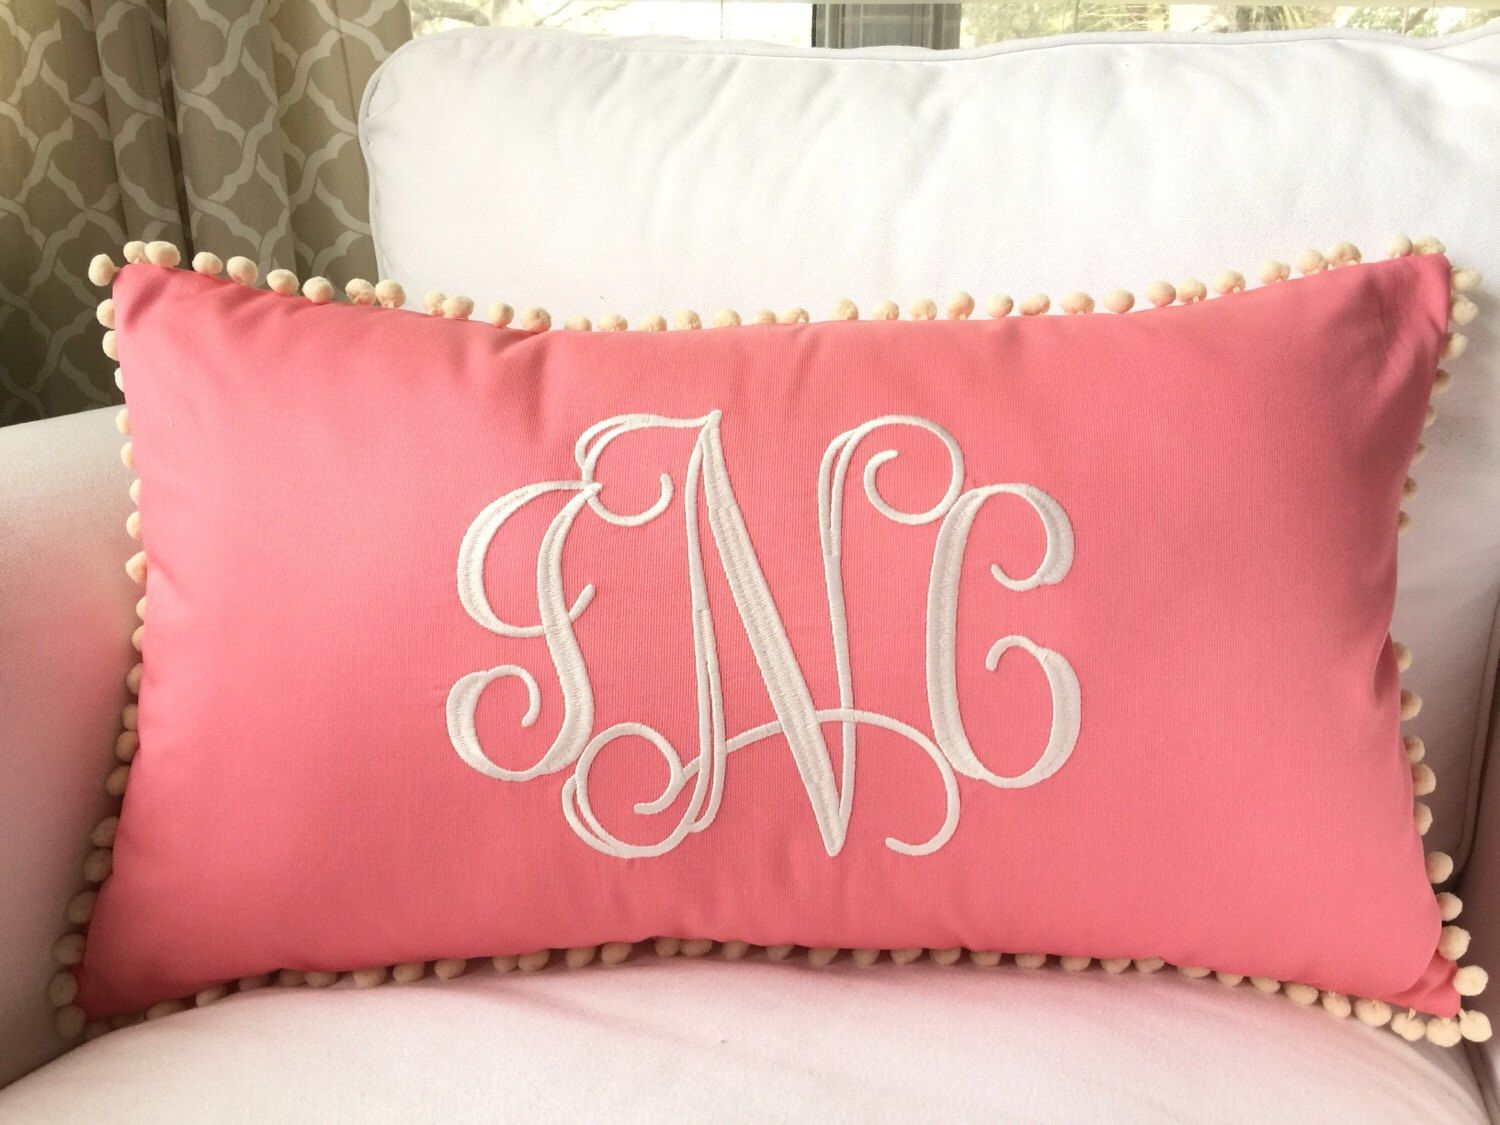 au lilly zoom fullxfull listing pillow il inspired case monogrammed sale pulitzer